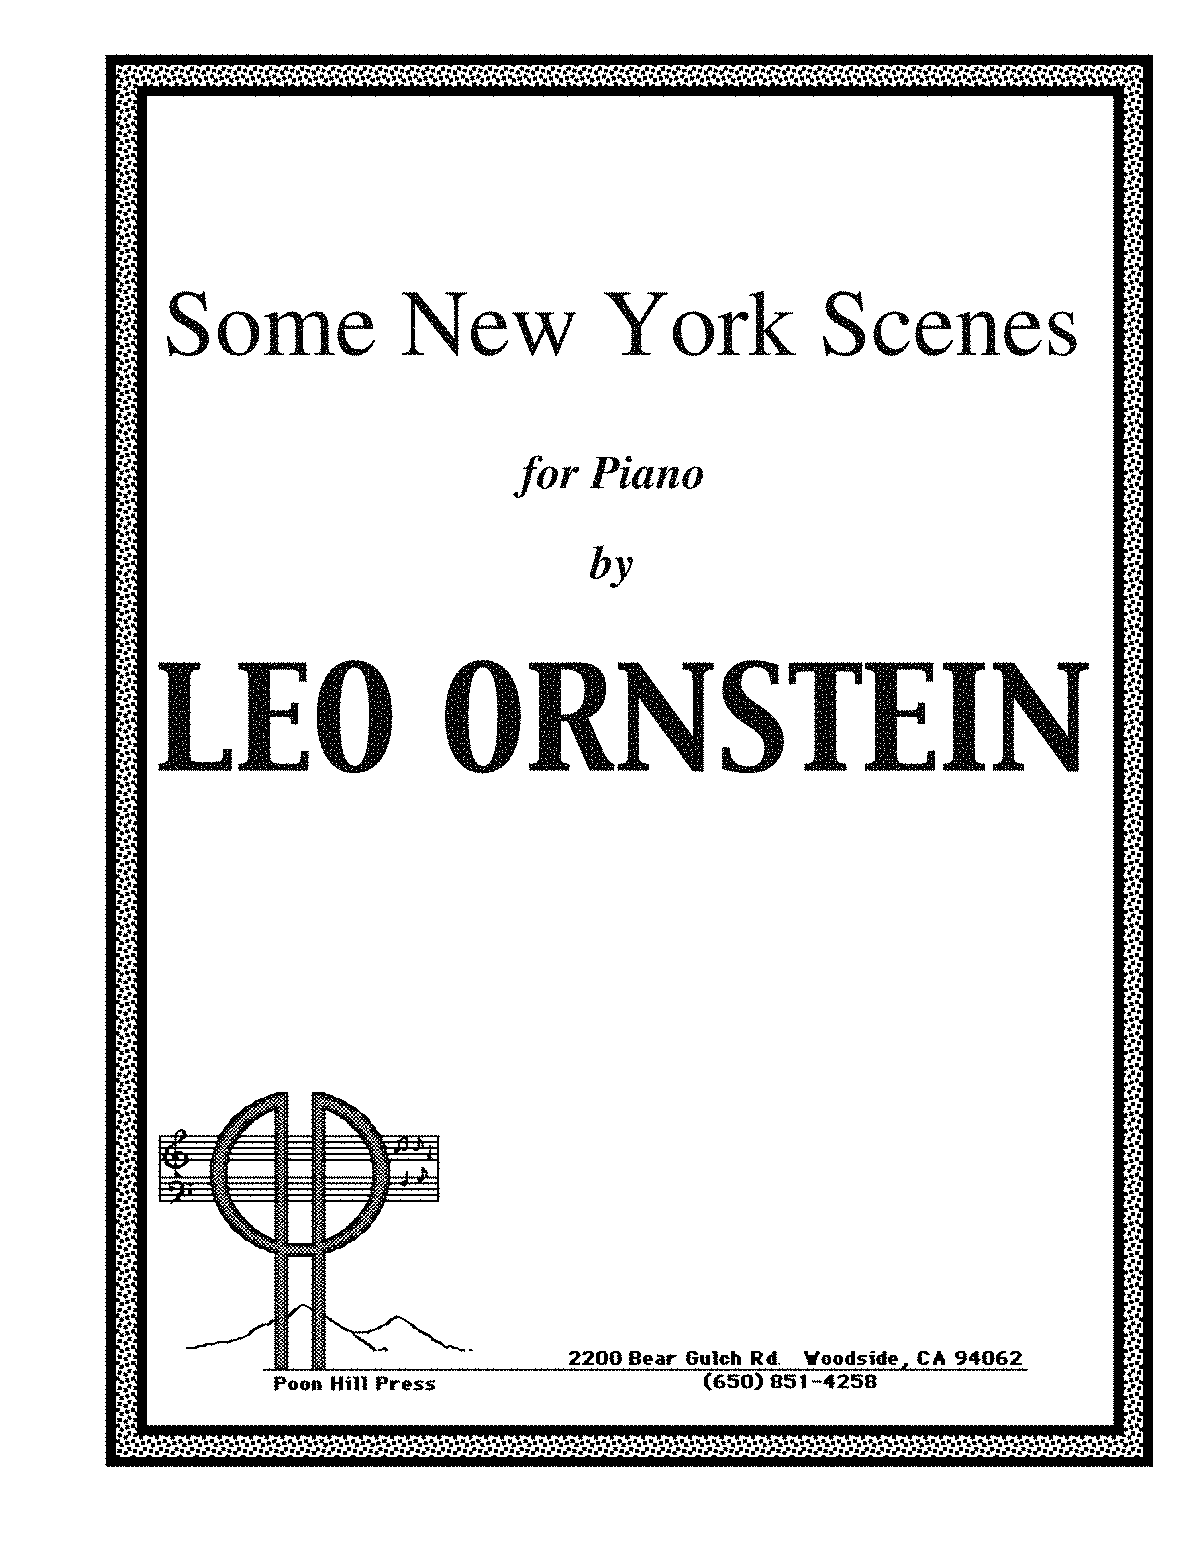 S105 - Some New York Scenes.pdf